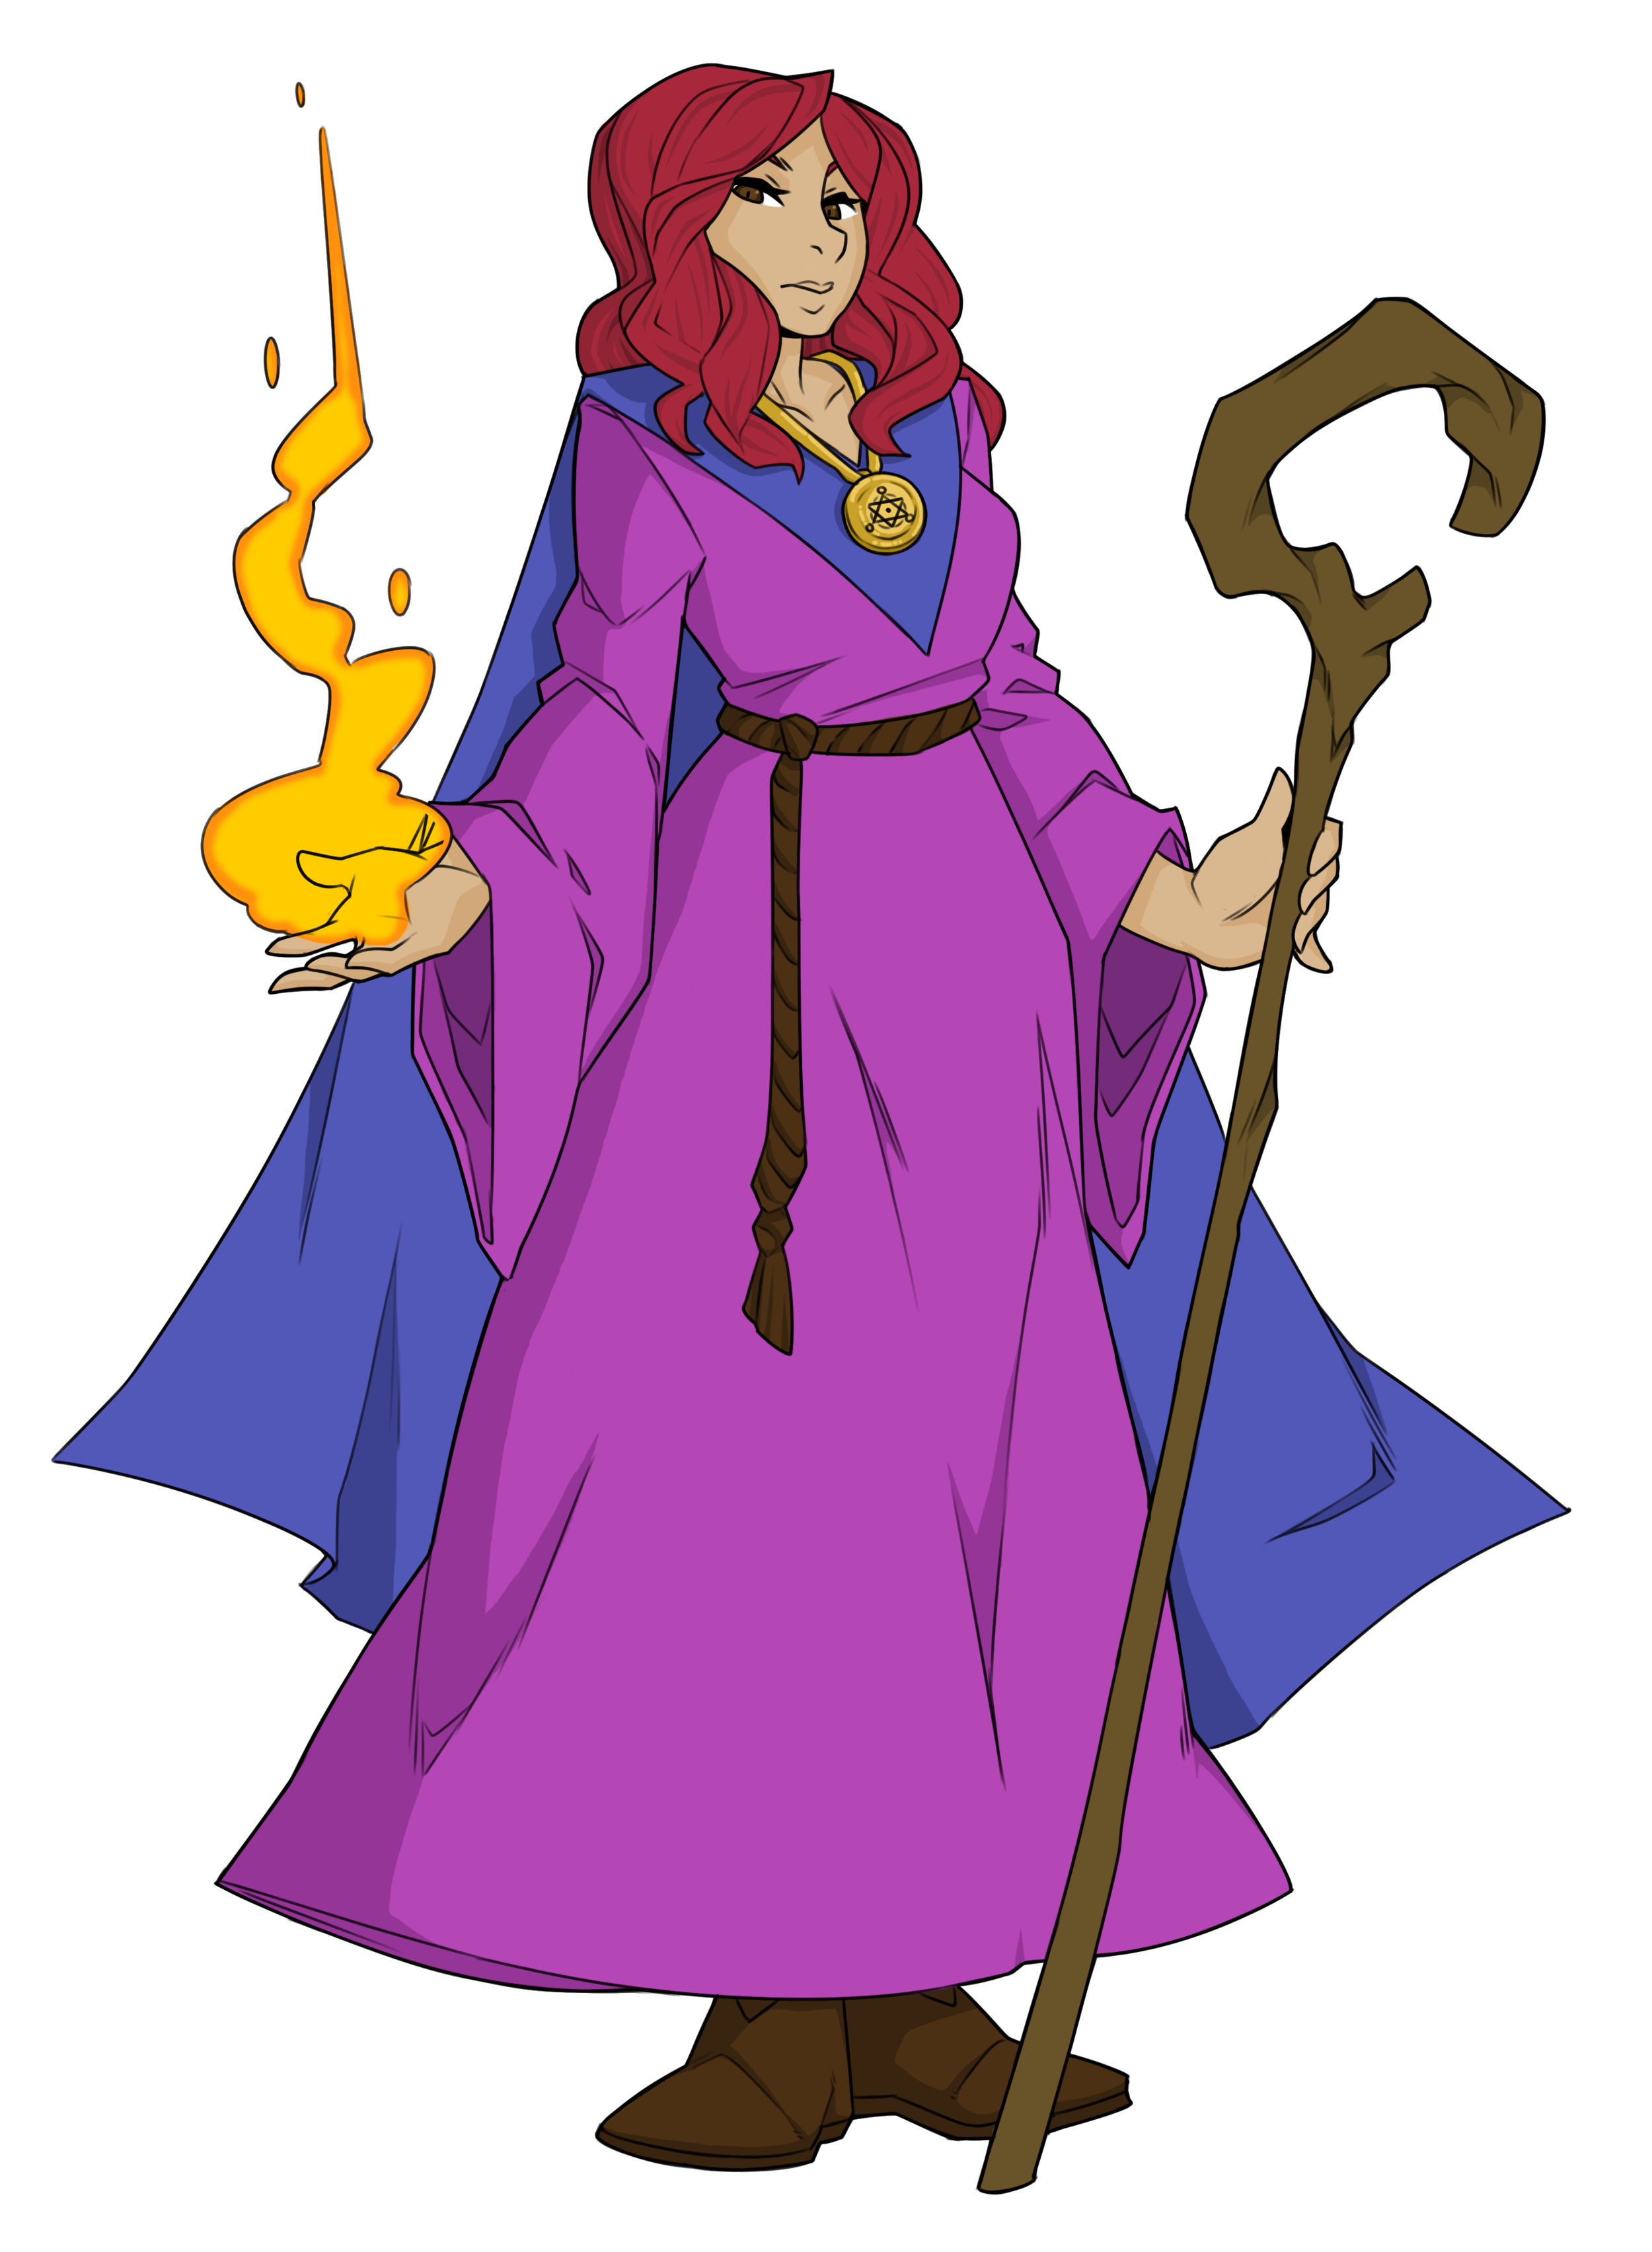 Prym - Class: MagicianAge: 19Hometown: PellPrym and her sister Pryscilla live in Pell with Arnen and Krell. She left the village a few years ago to train at the Magical Archive in Glasmere, but recently returned. Prym joins the party early on in the adventure as your elemental spell caster.